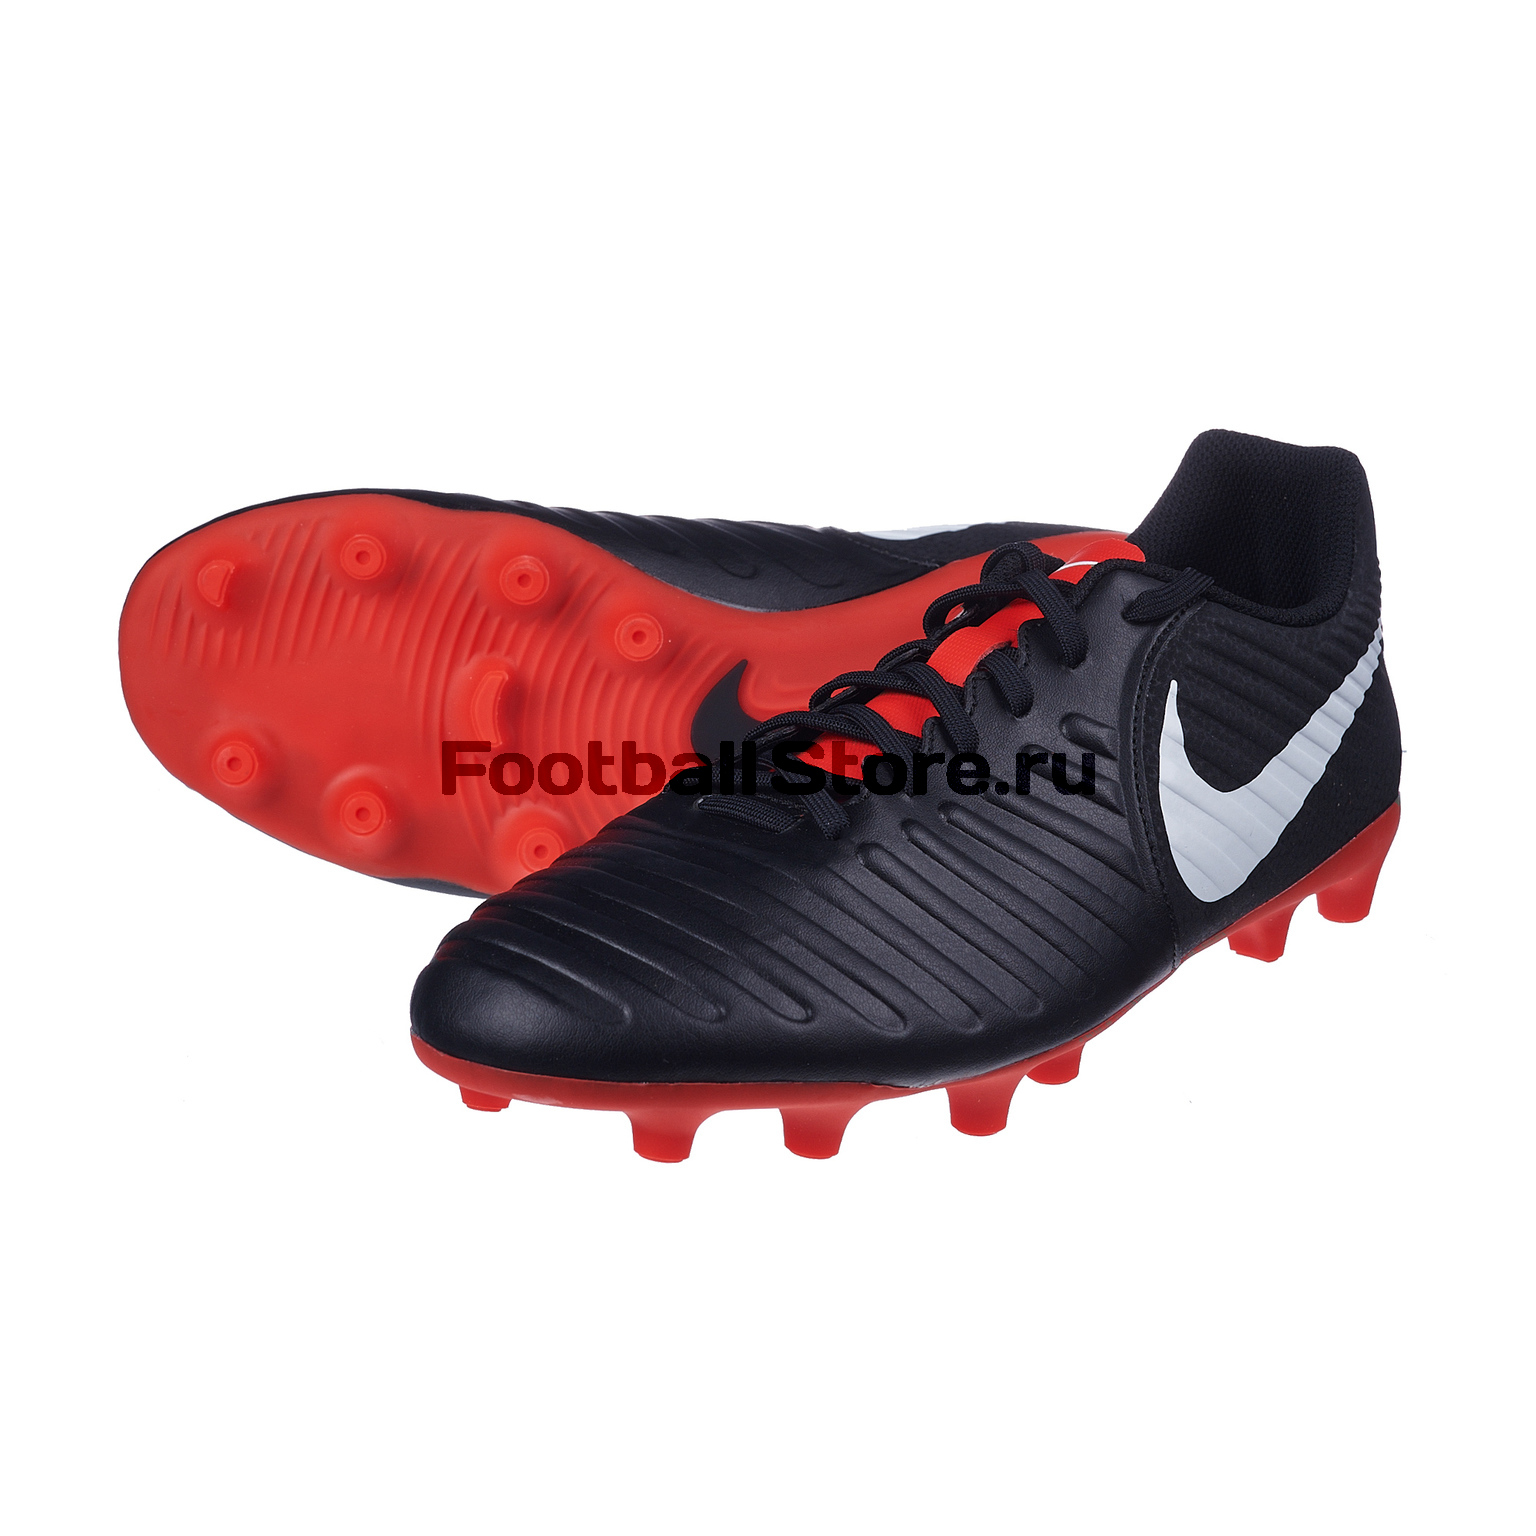 Бутсы Nike Legend 7 Club FG AO2597-006 бутсы nike legend 7 elite sg pro ac ar4387 006